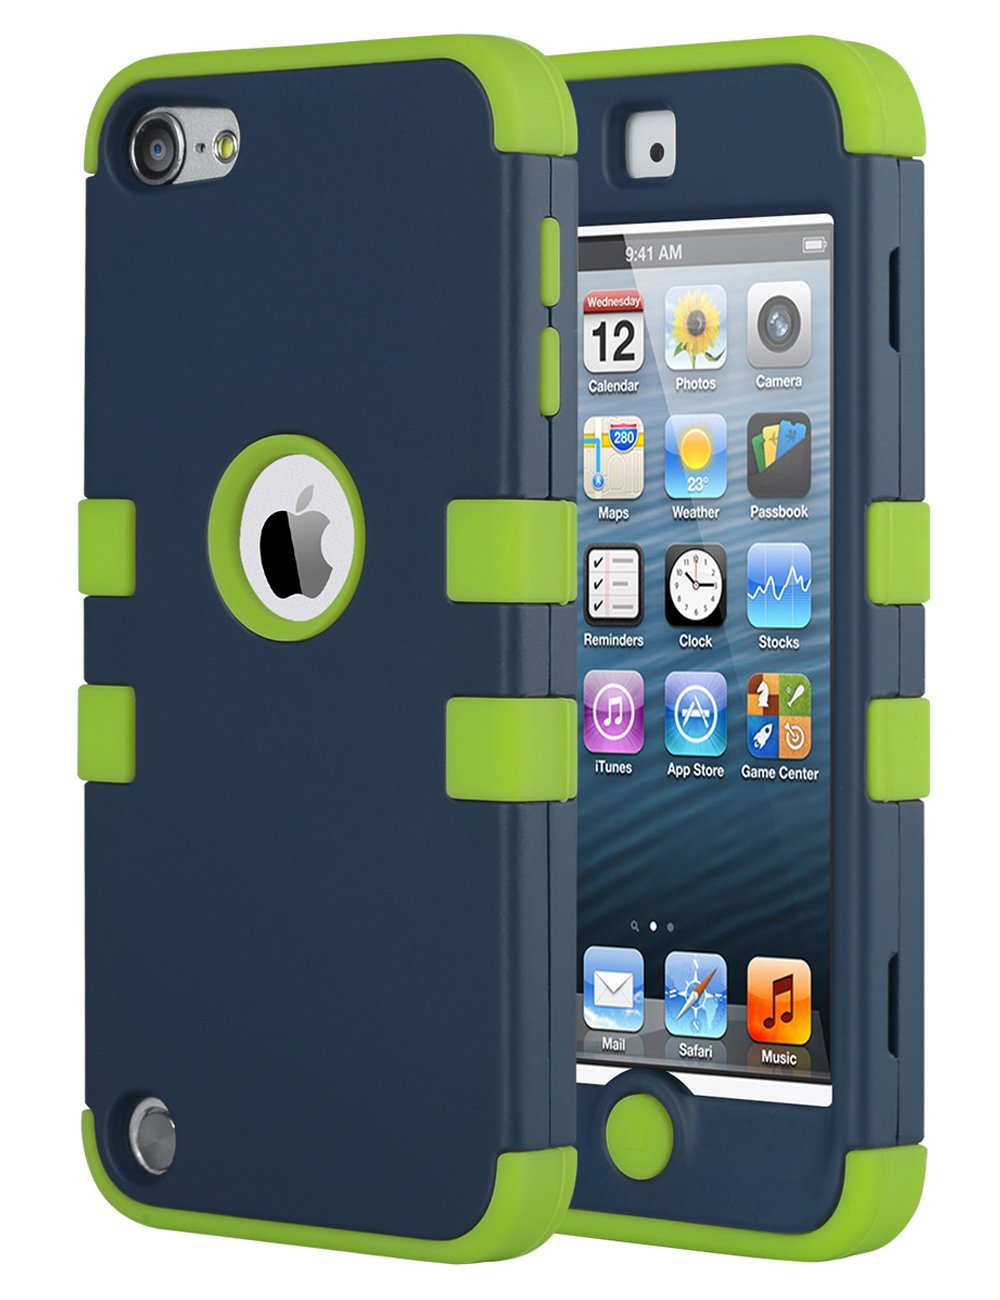 iPod Touch 6th Generation Case, iPod Touch 5 Case, ULAK 3 Layer Anti Slip Anti-Scratch Shockproof Protective Cover with Hybrid Soft Silicone Hard PC Case (Aqua Mint/Grey)